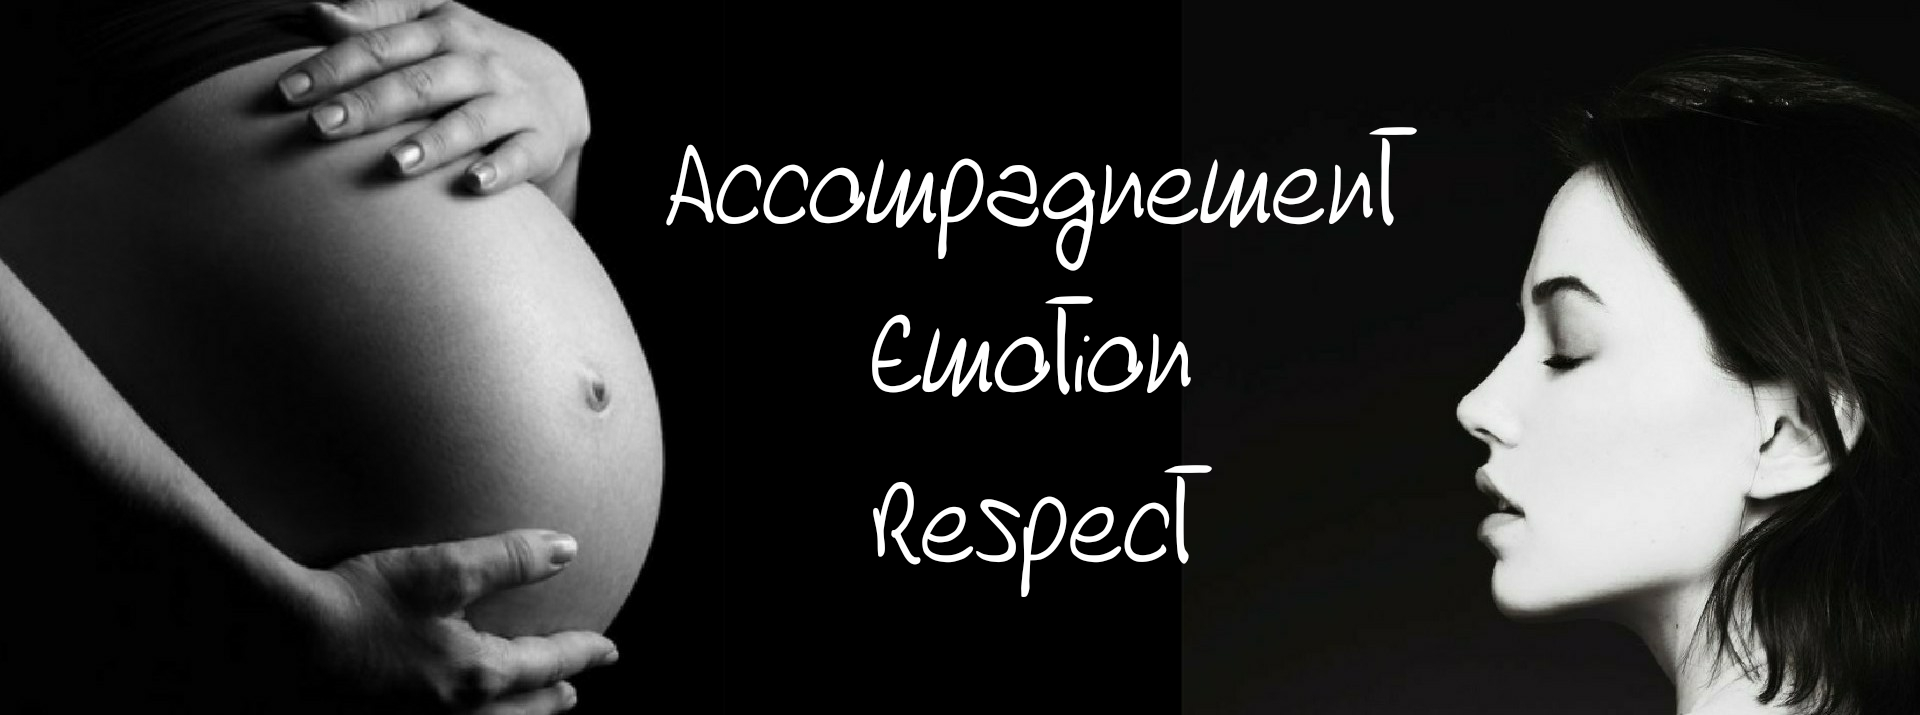 accompagnement-emotion-respect